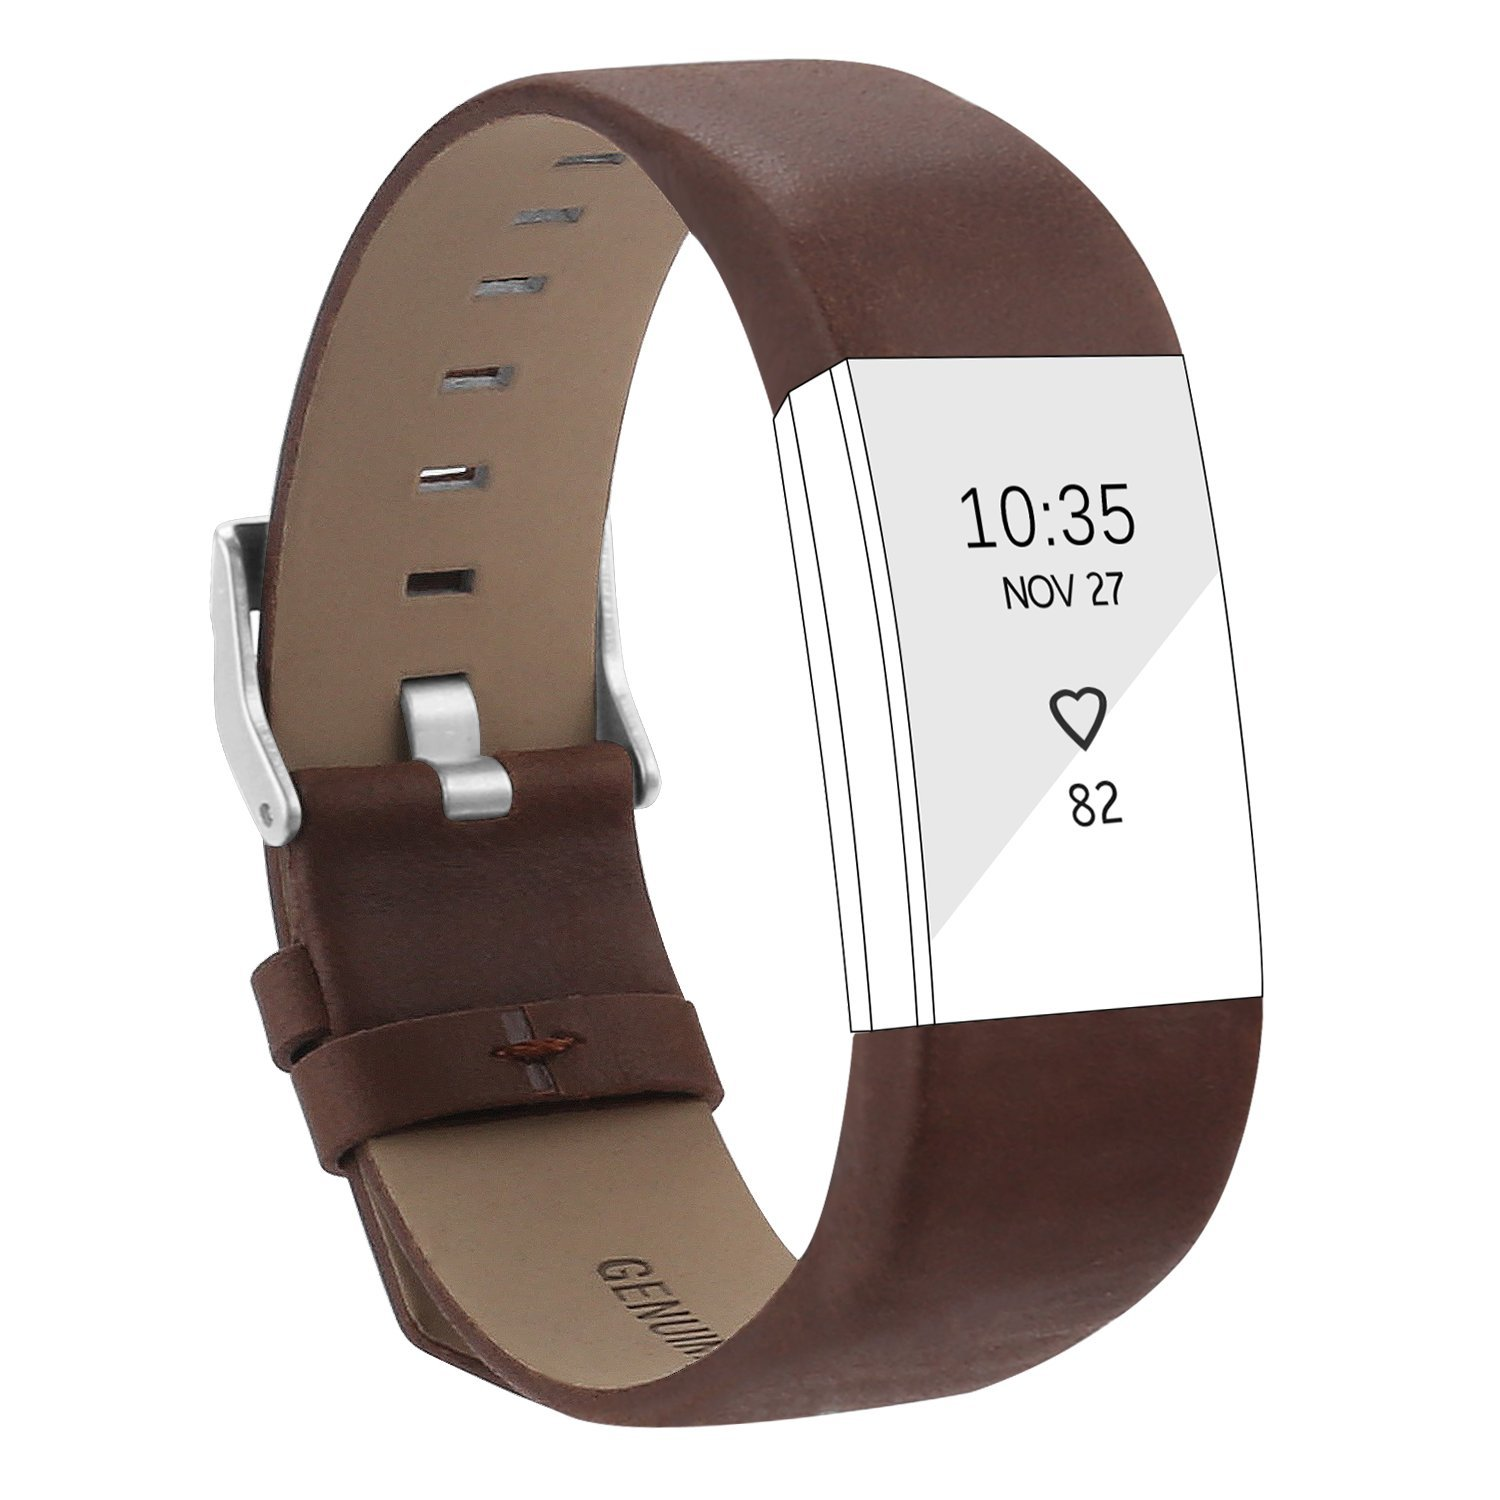 AdePoy Bands for Fitbit Charge 2 Replacement Leather Sport Strap for Charge 2 Wristband